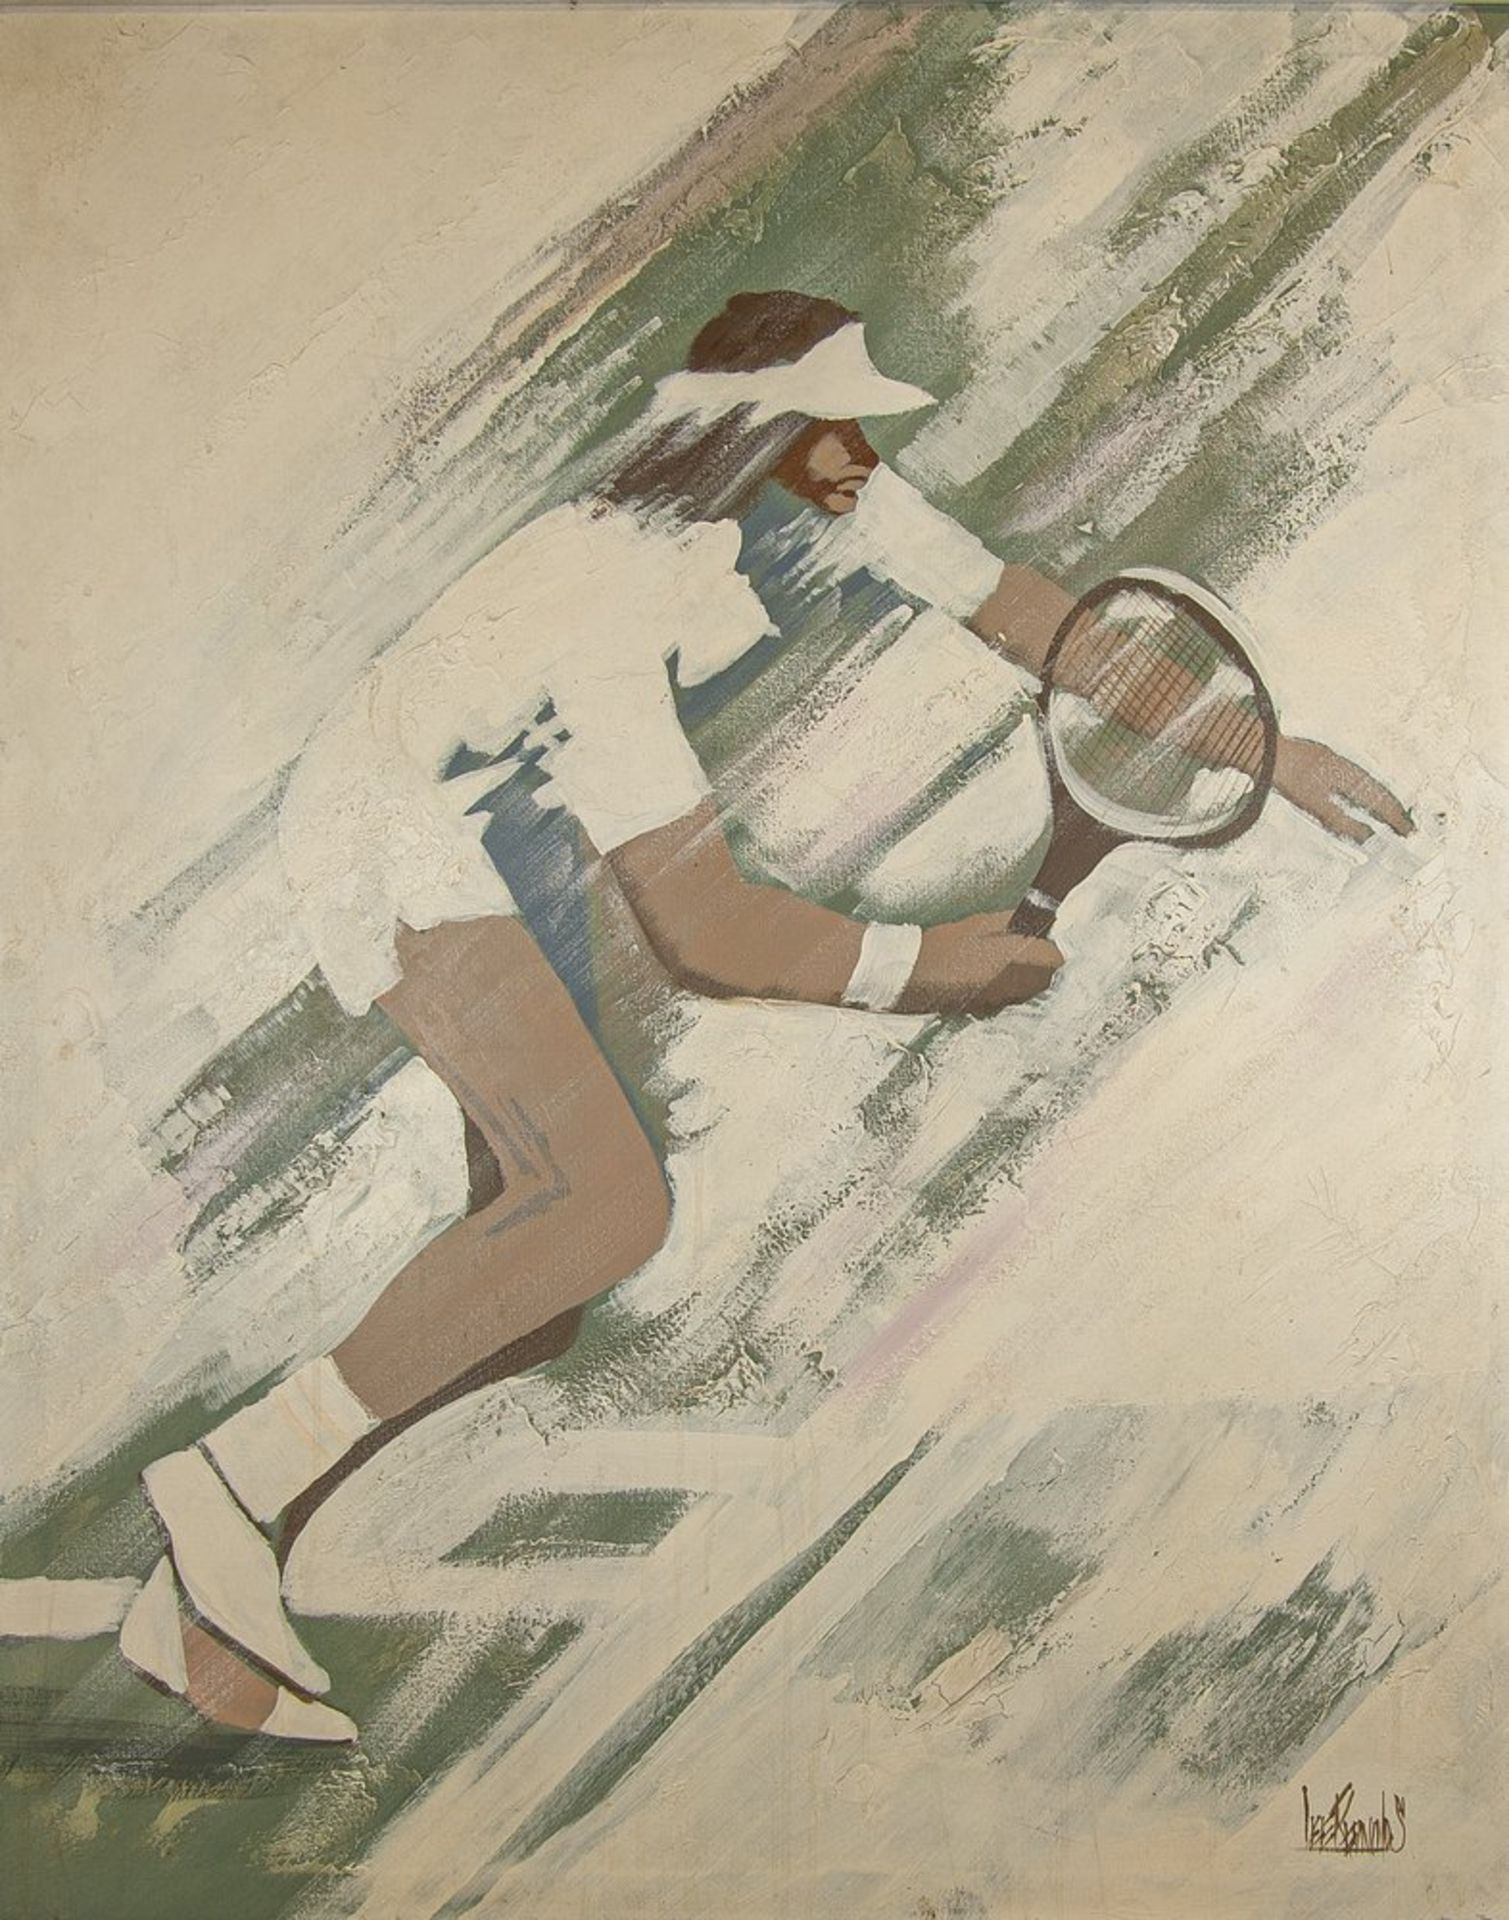 Los 589 - UNKNOWN ARTIST, XX CENTURY Tennis player Indistinctly signed 'Ive Tonolos' [...]